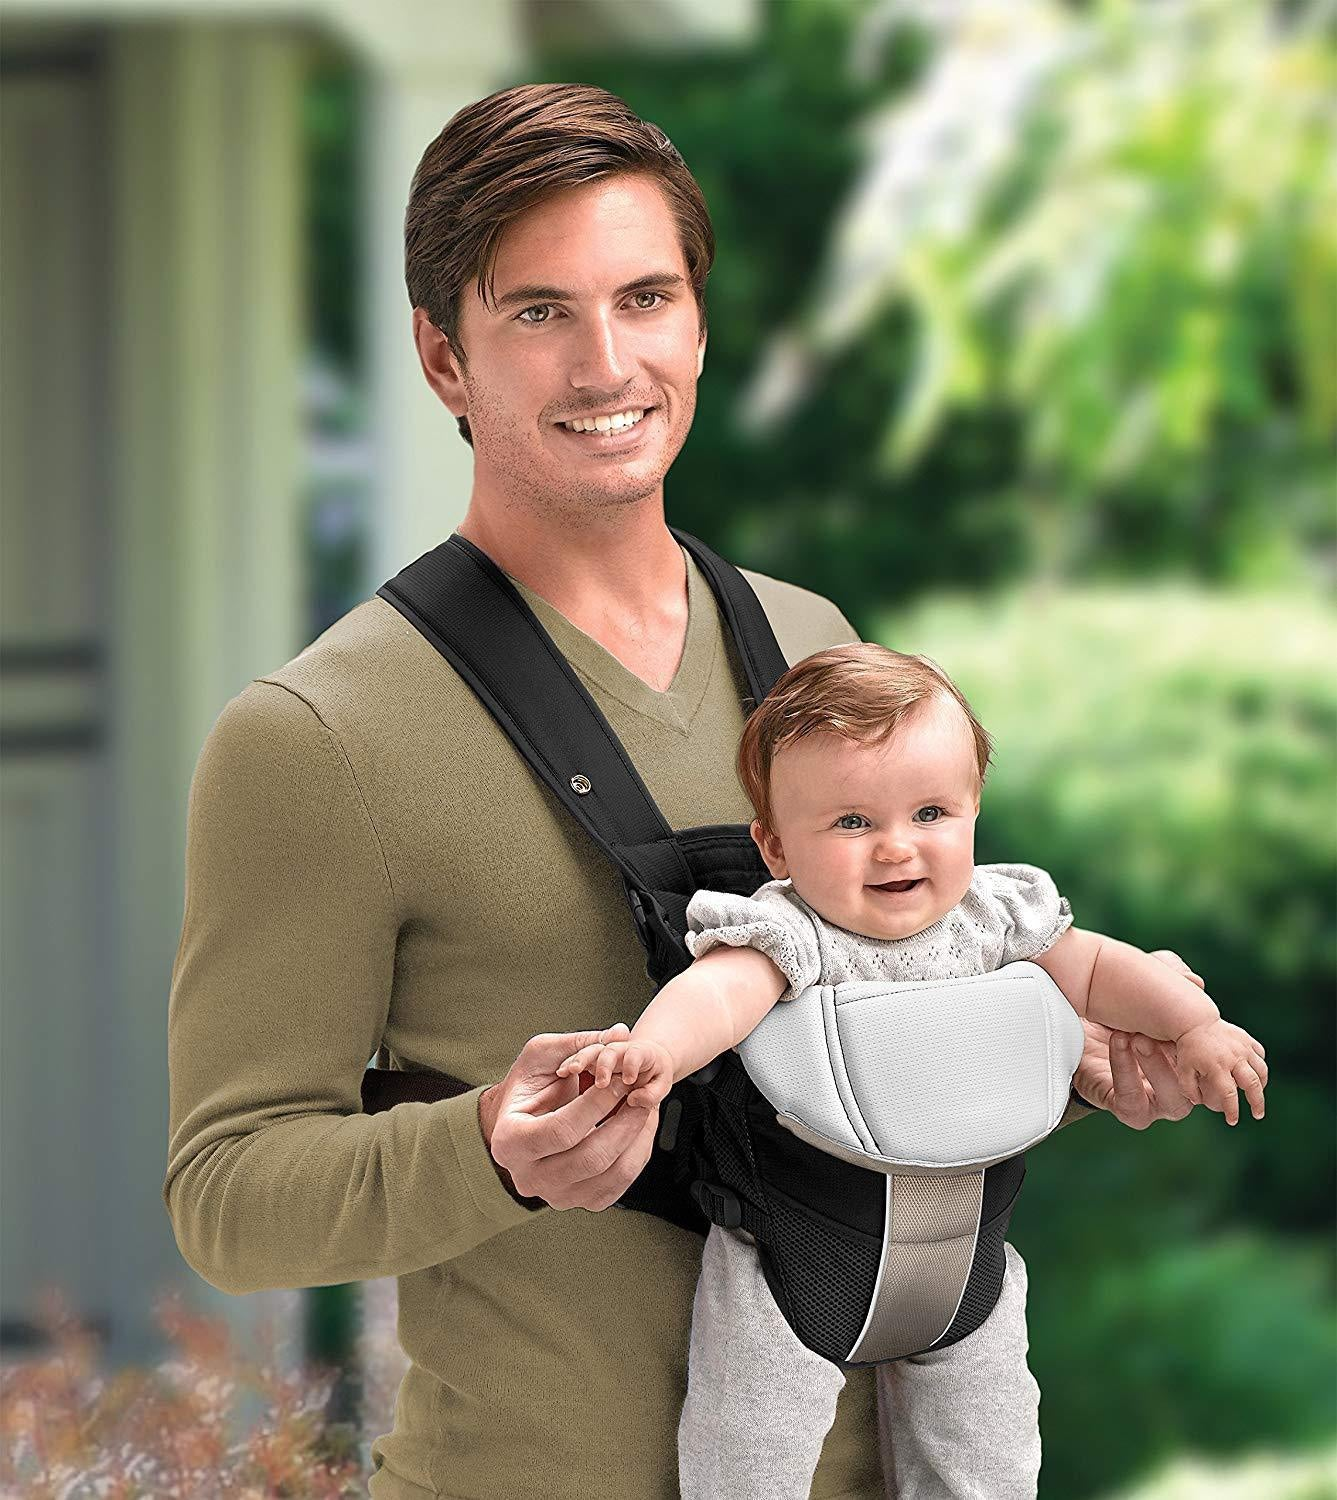 Chicco UltraSoft Infant Carrier in Champagne